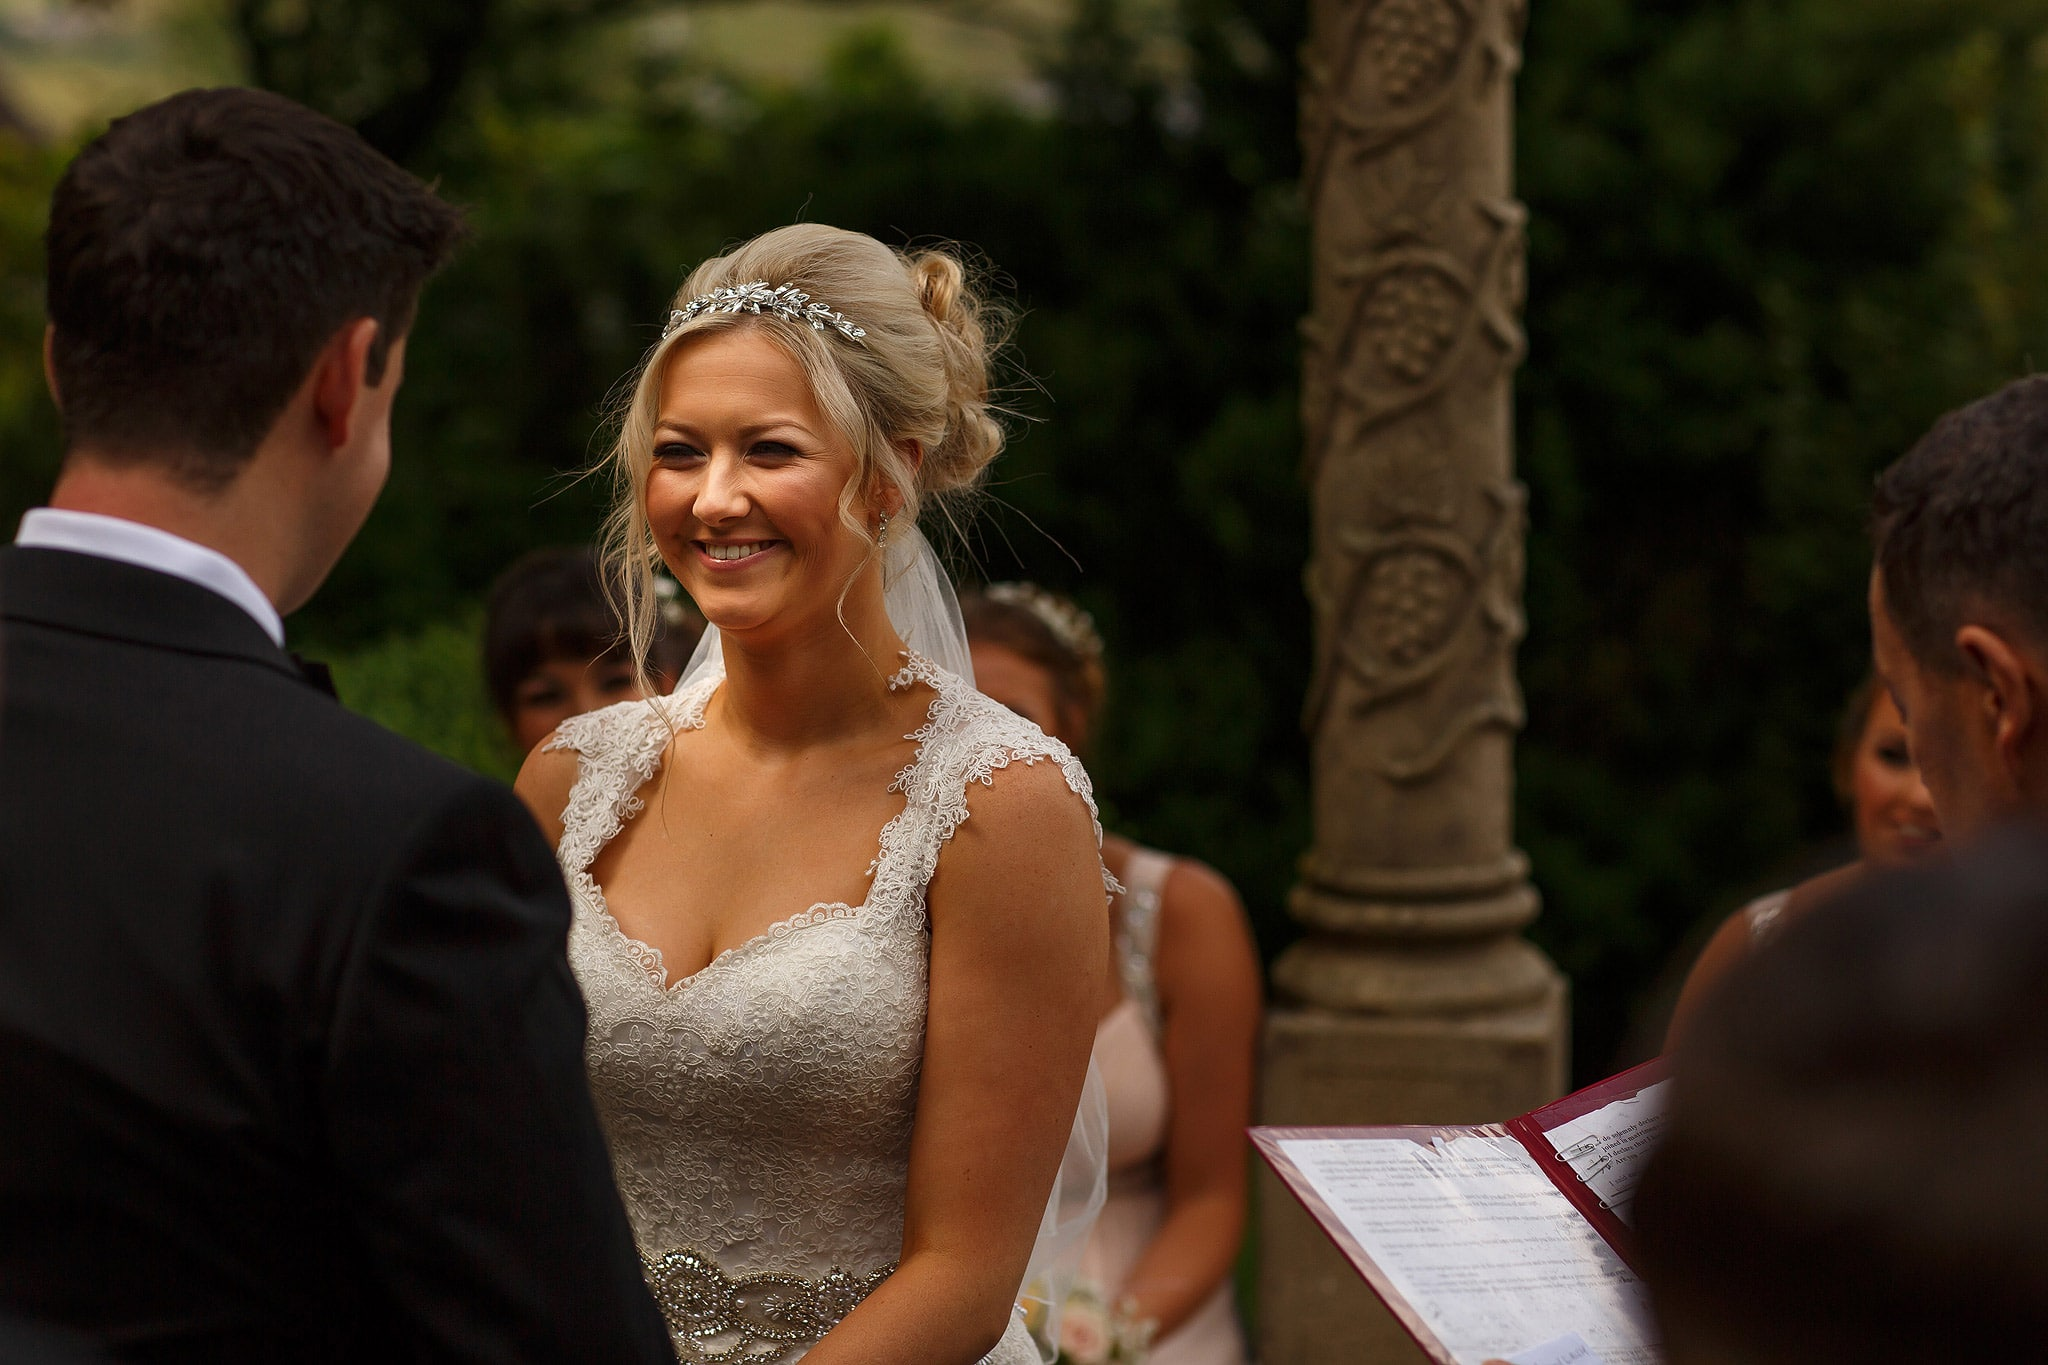 Bride and groom saying vows during outdoor wedding at the saddleworth hotel